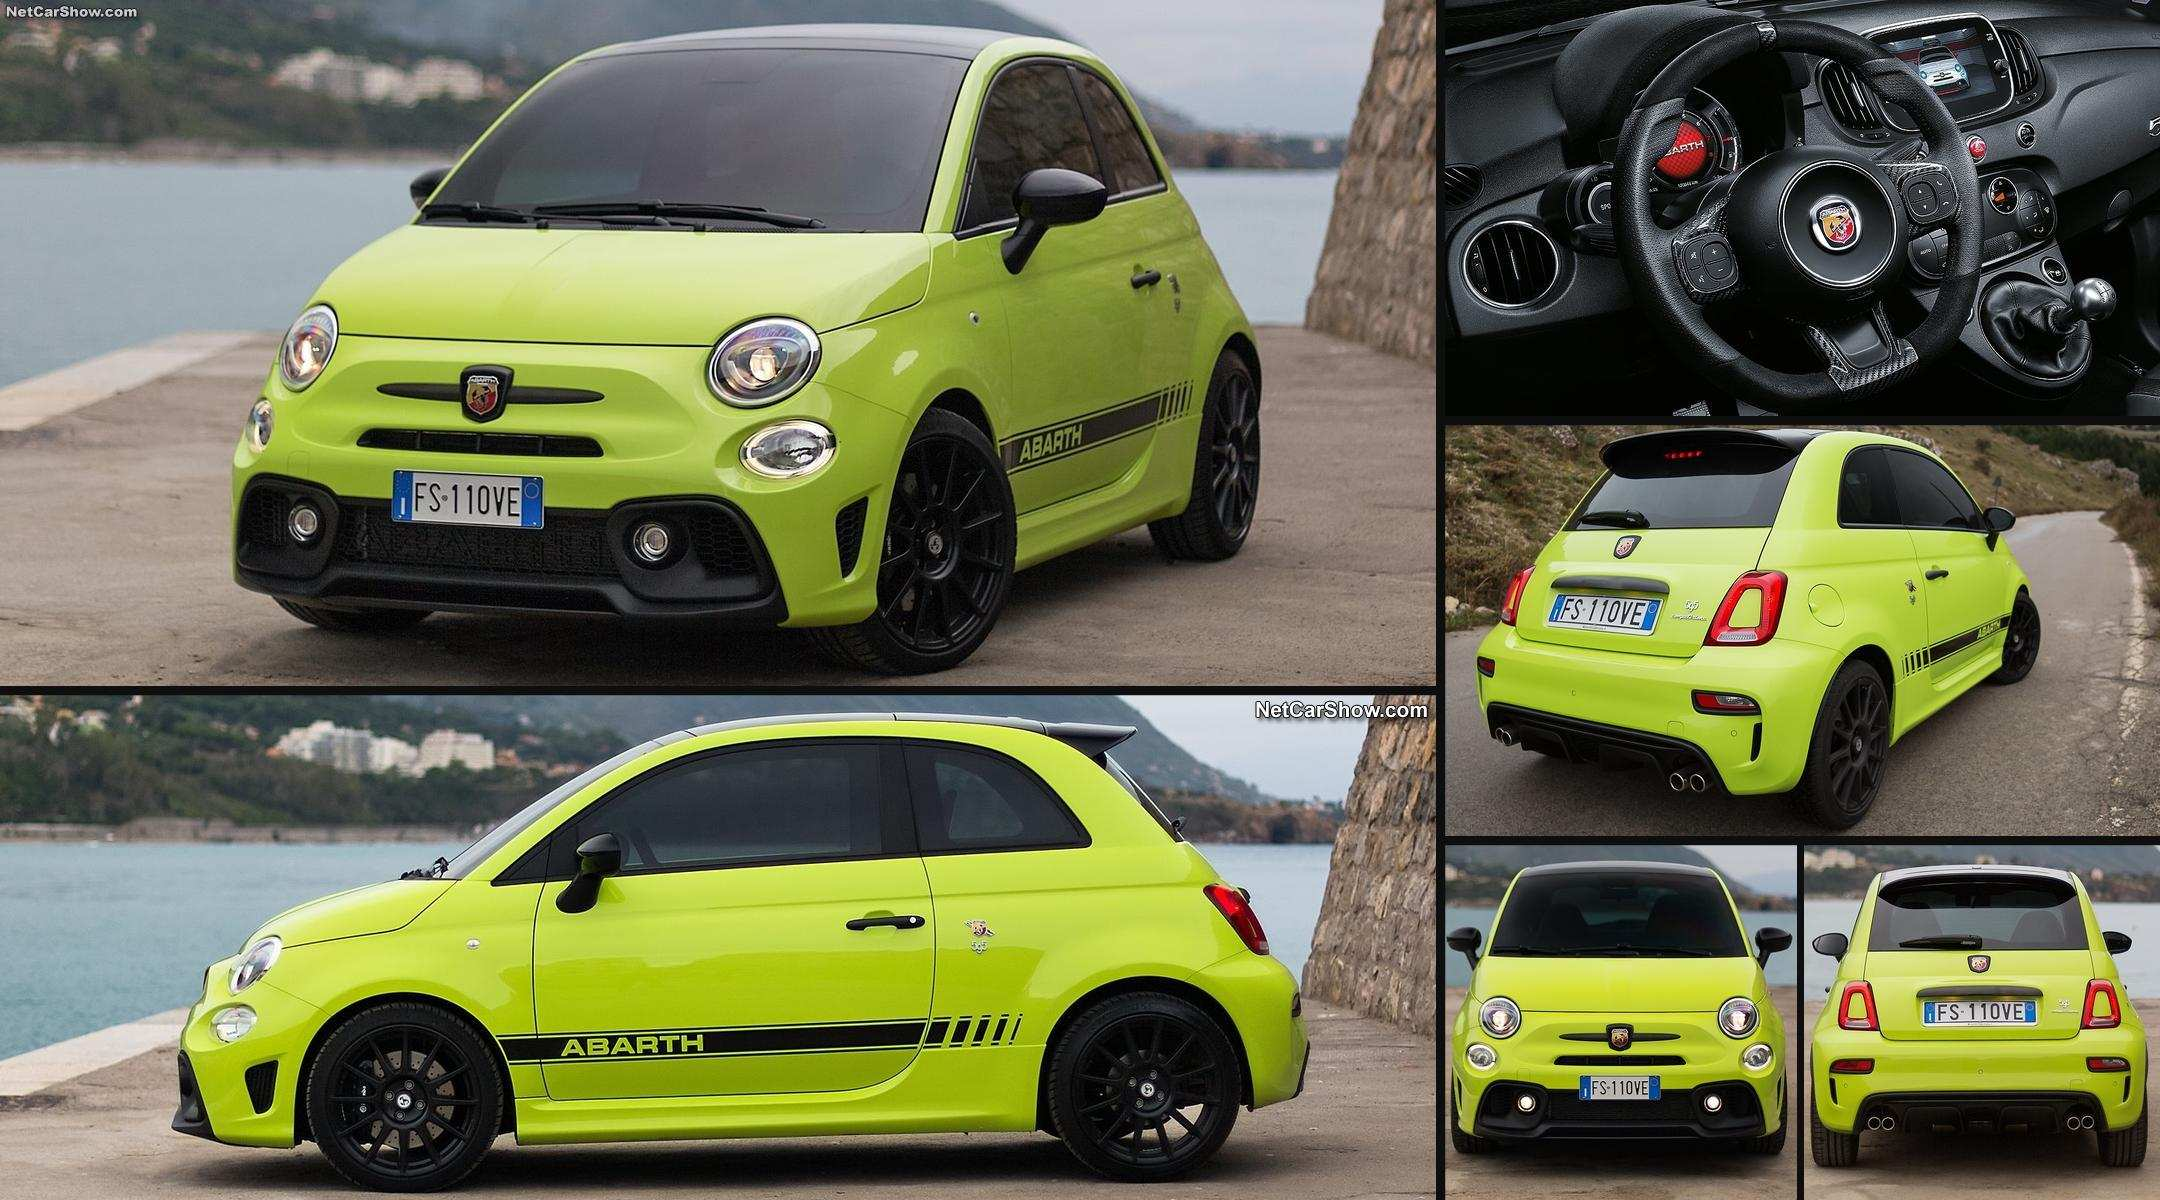 28 All New 2019 Fiat 500 Abarth Performance and New Engine for 2019 Fiat 500 Abarth